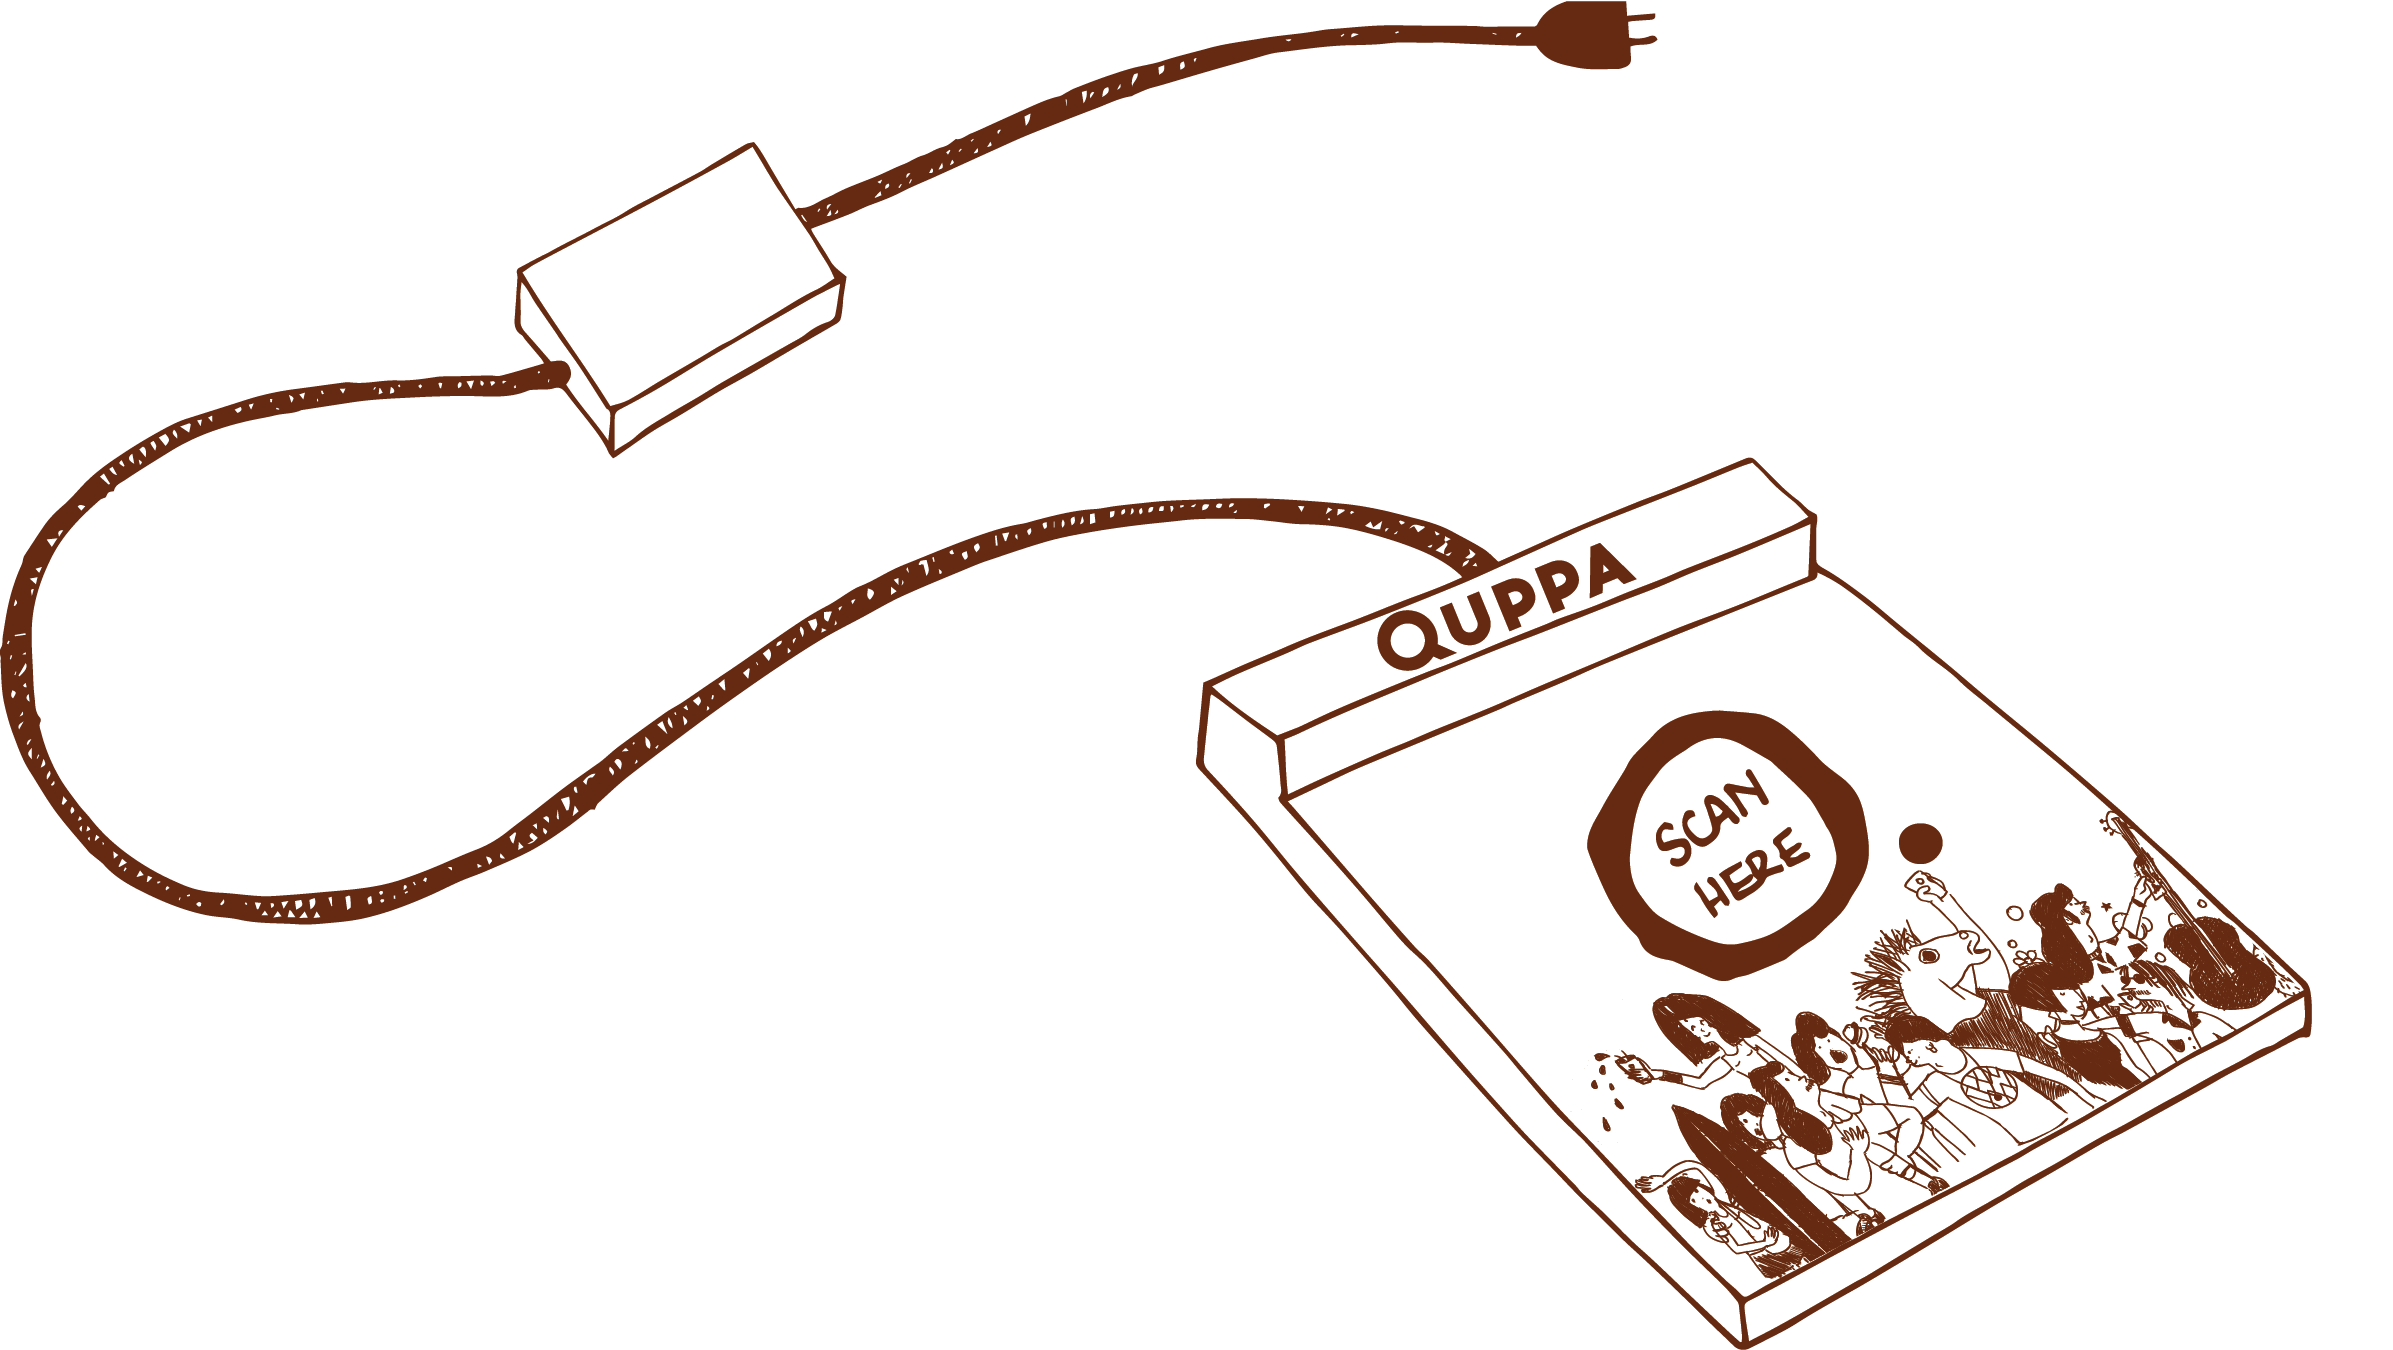 Quppa cup scanner